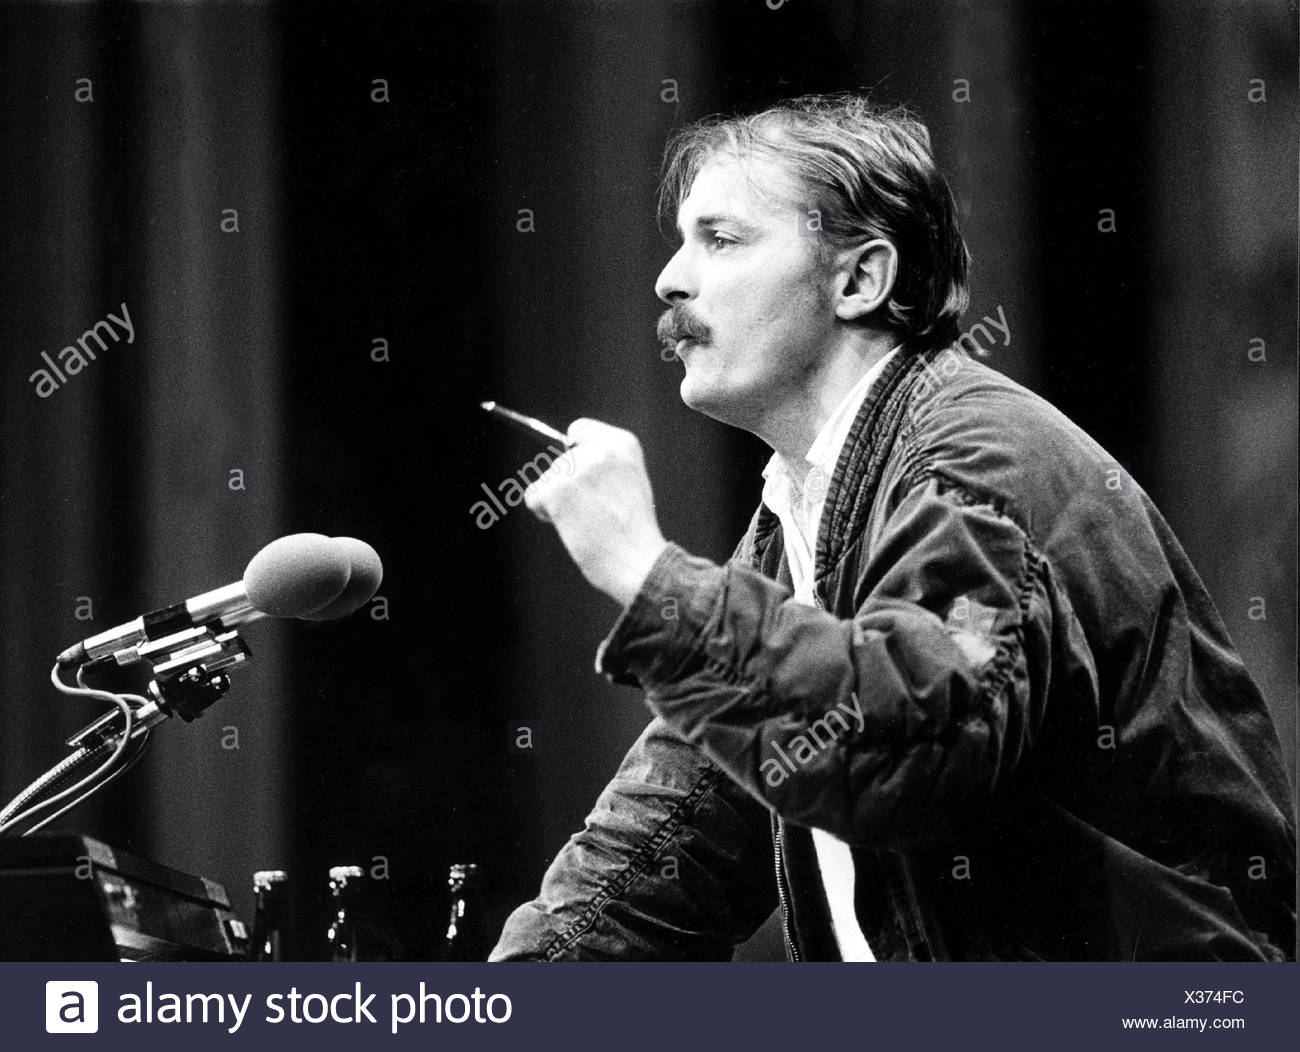 Hubert,  Kleinert, German politician, portrait, federal party conference of The Greens, Hamburg, 7.- 9.12.1984, giving speech, m - Stock Image